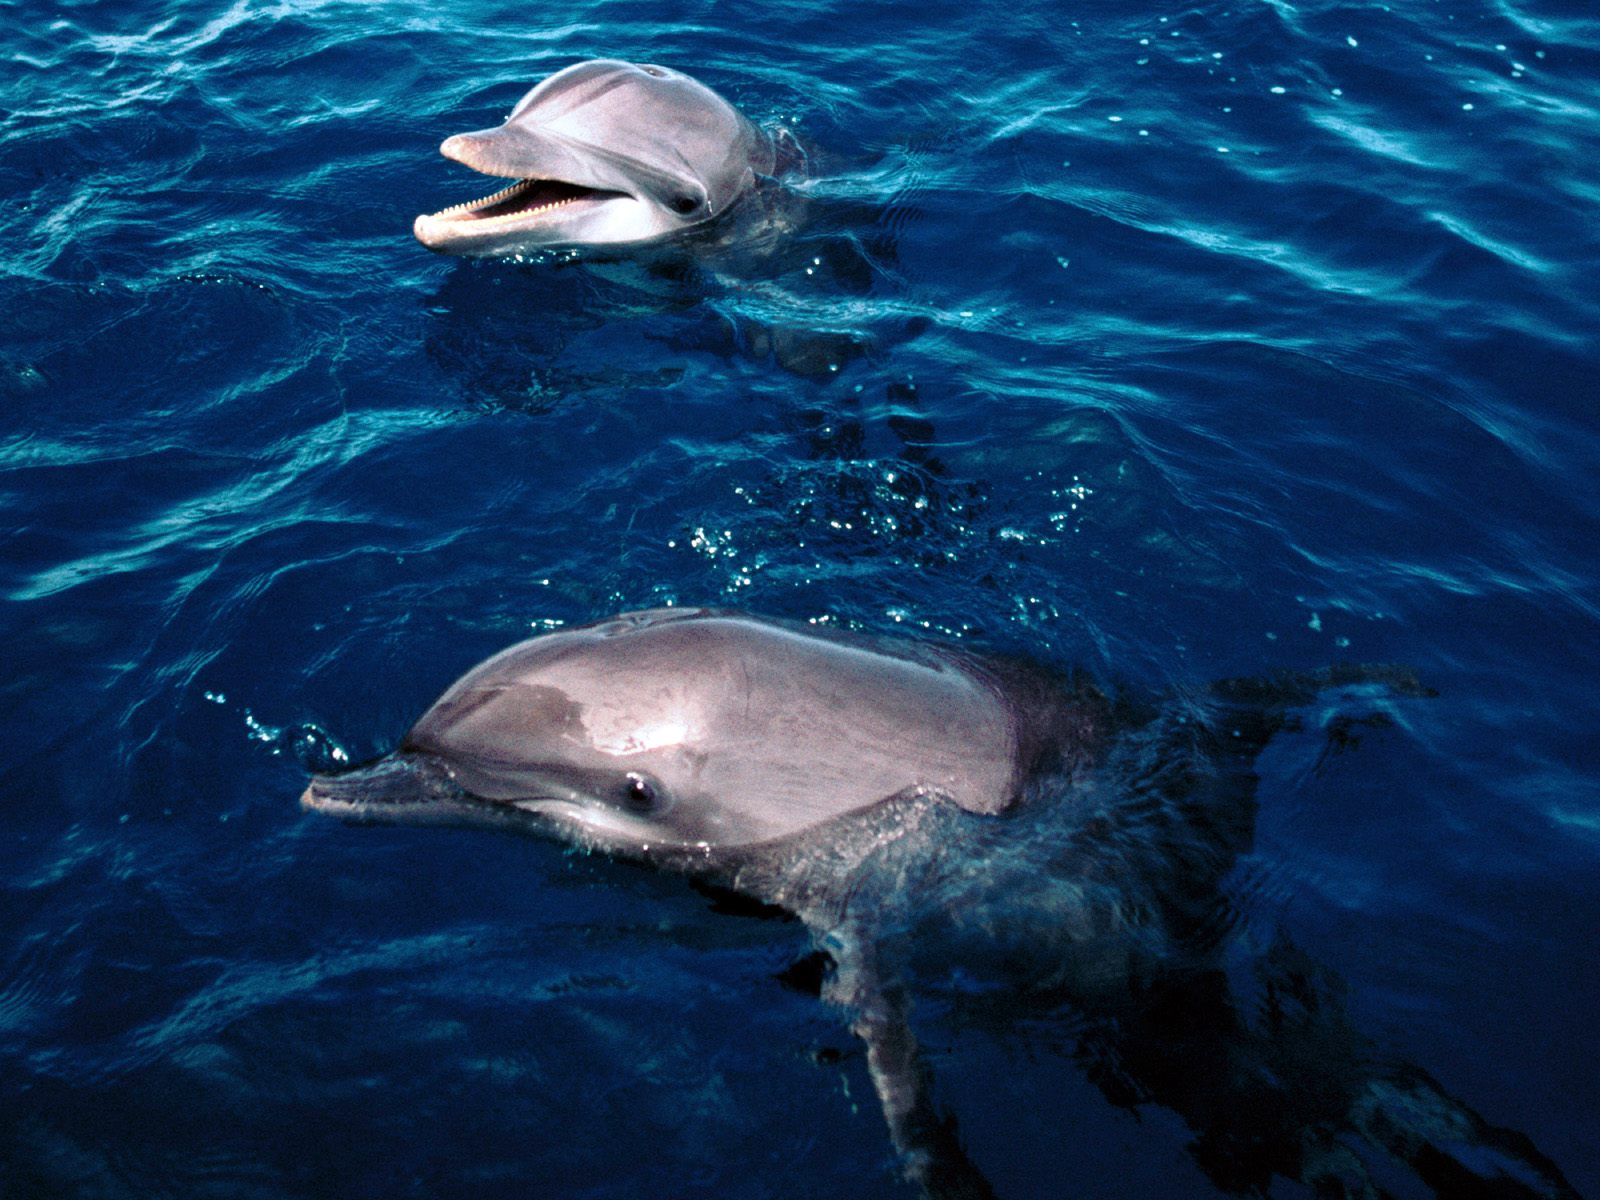 Free downloads of frolicking dolphins honduras desktop wallpaper of